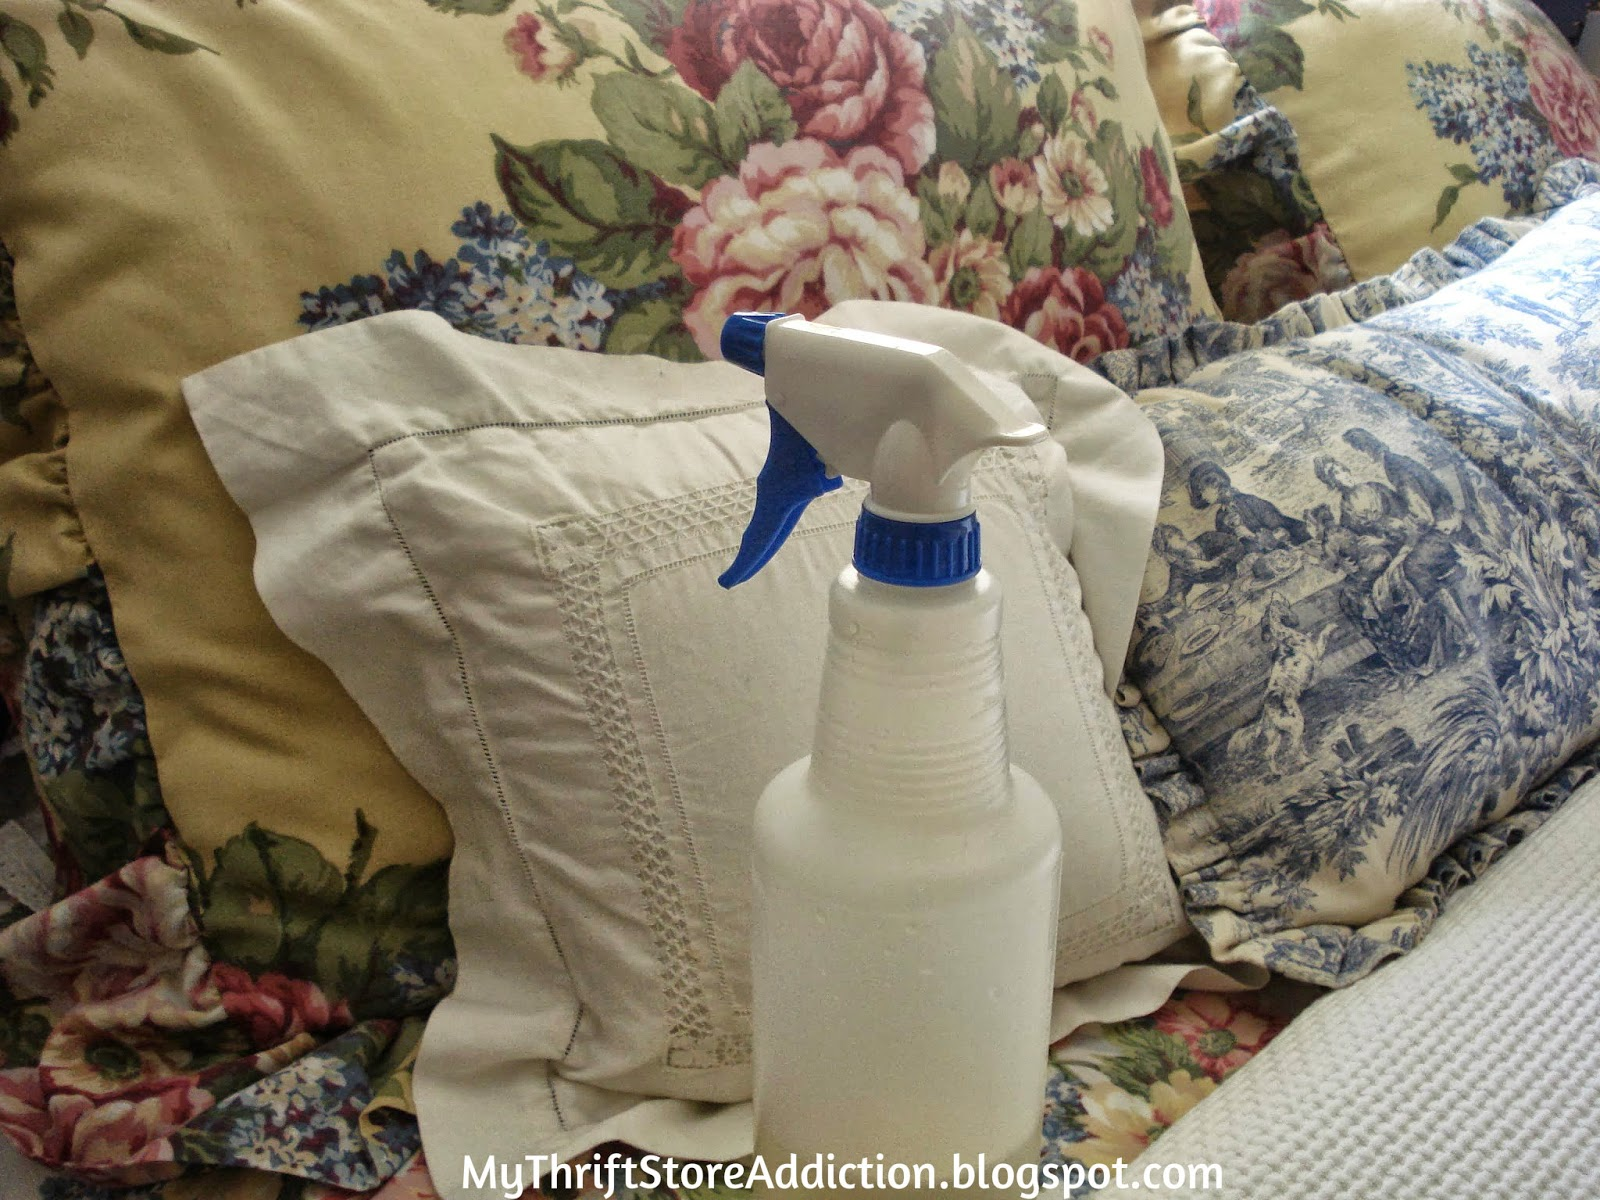 Warm and Cozy Guest Rooms  mythriftstoreaddiction.blogspot.com  Comfy bedding and lavender linen spray to make your guests feel welcome!